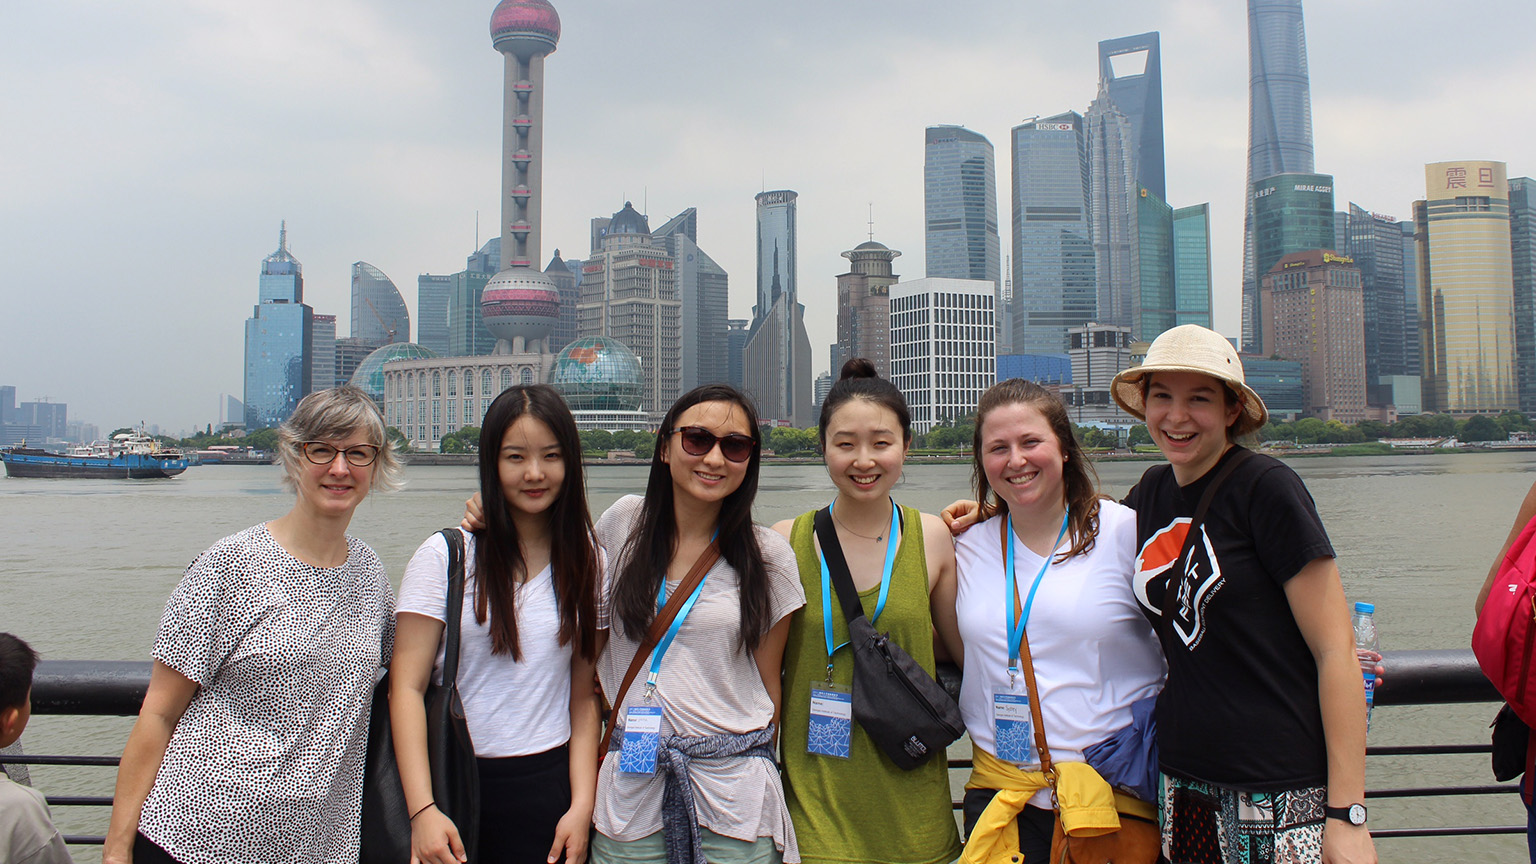 Michelle Rinehart and first-year students in front of the Shanghai skyline.